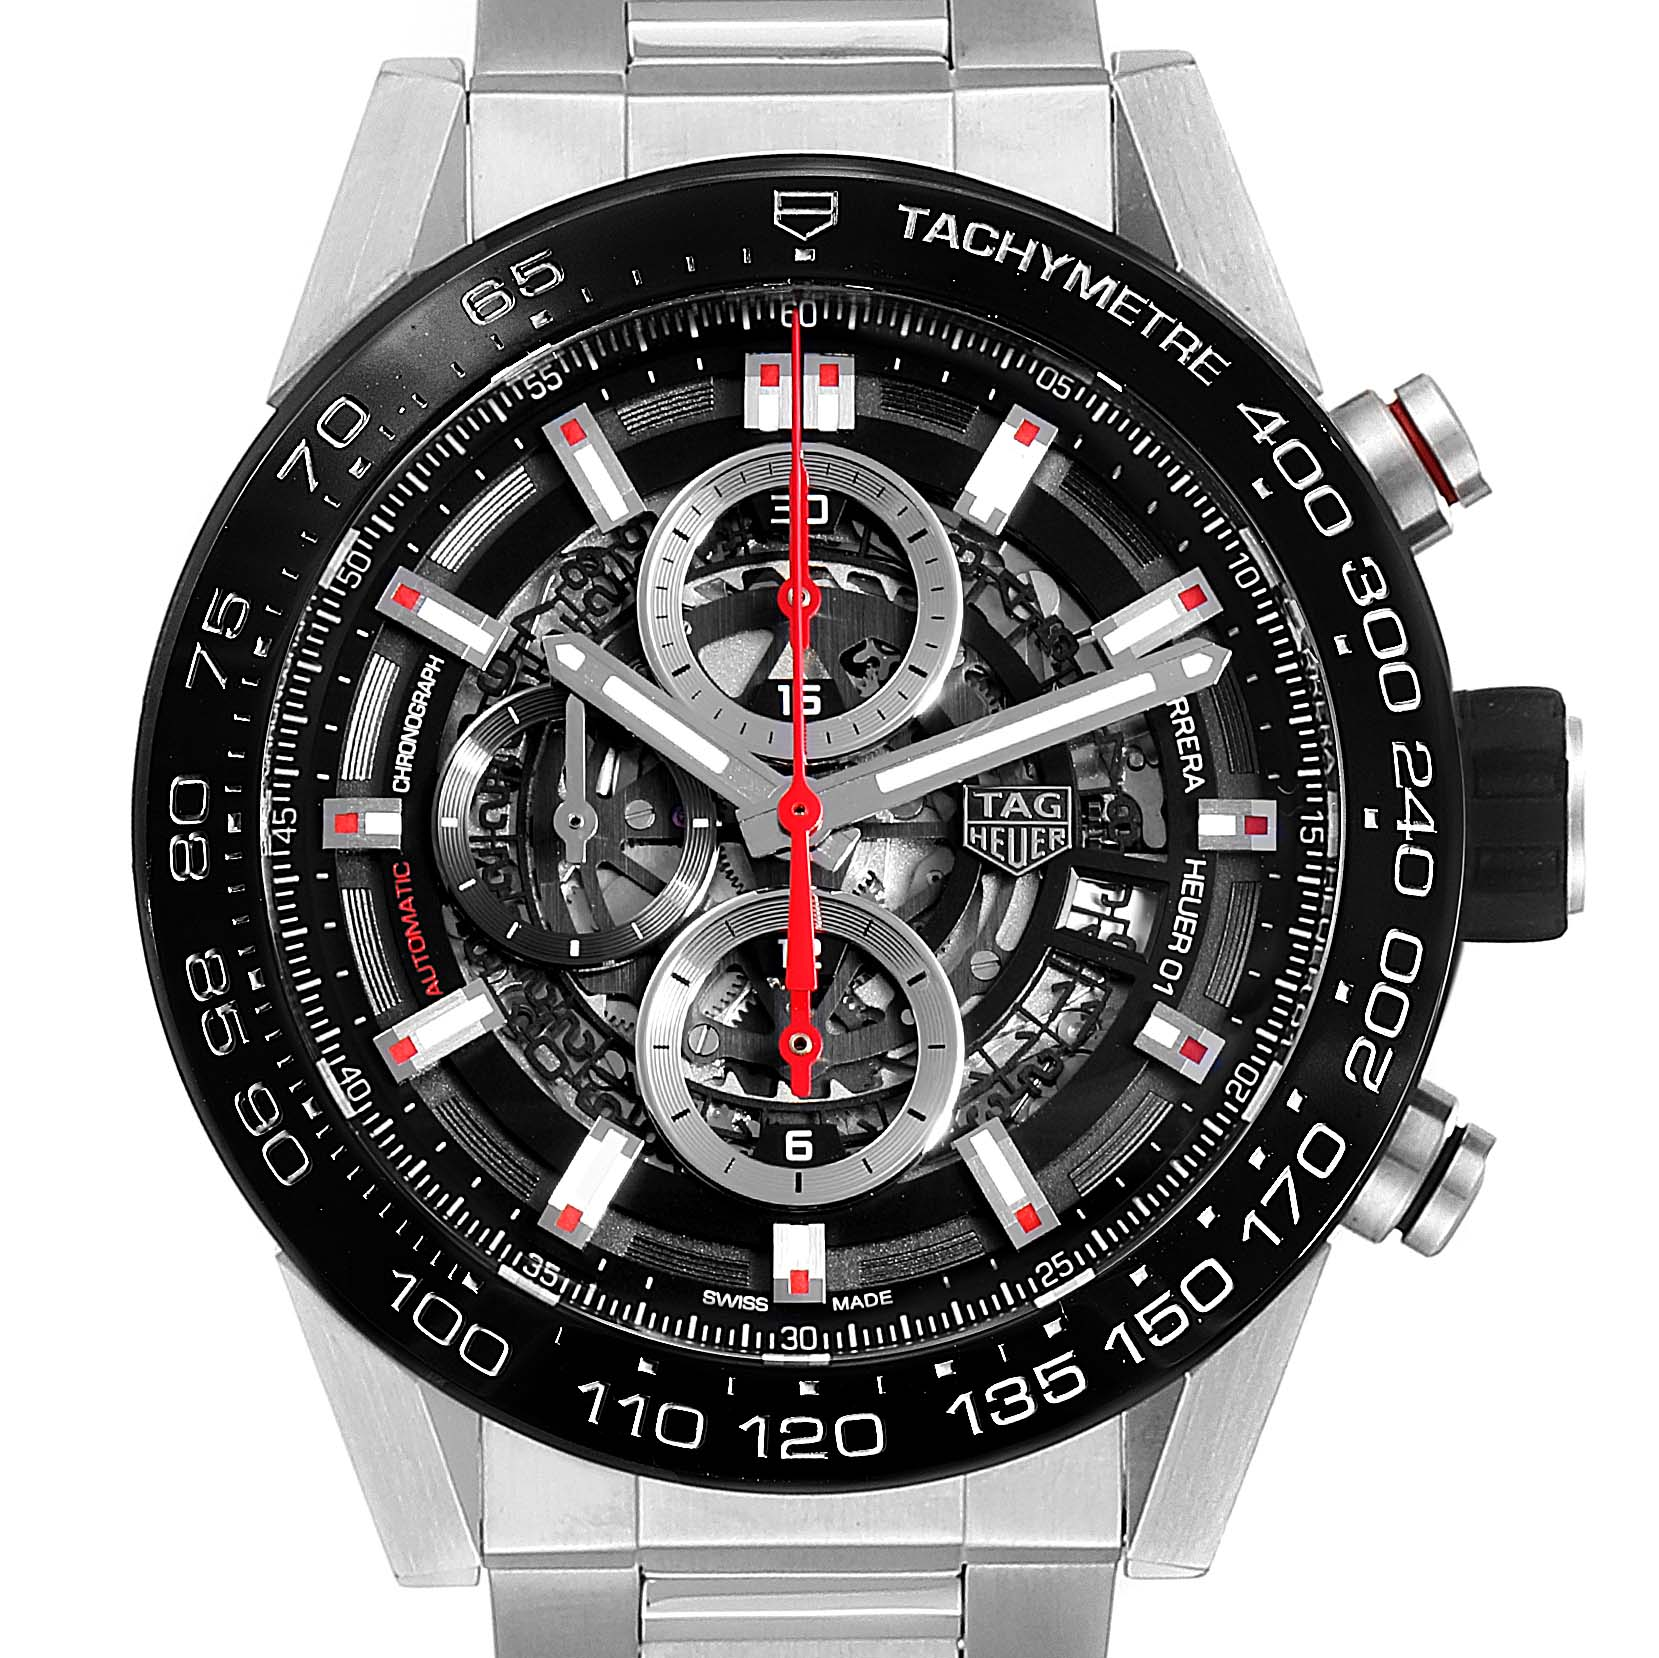 Tag Heuer Carrera Skeleton Dial Chronograph Mens Watch CAR2A1W Box Card